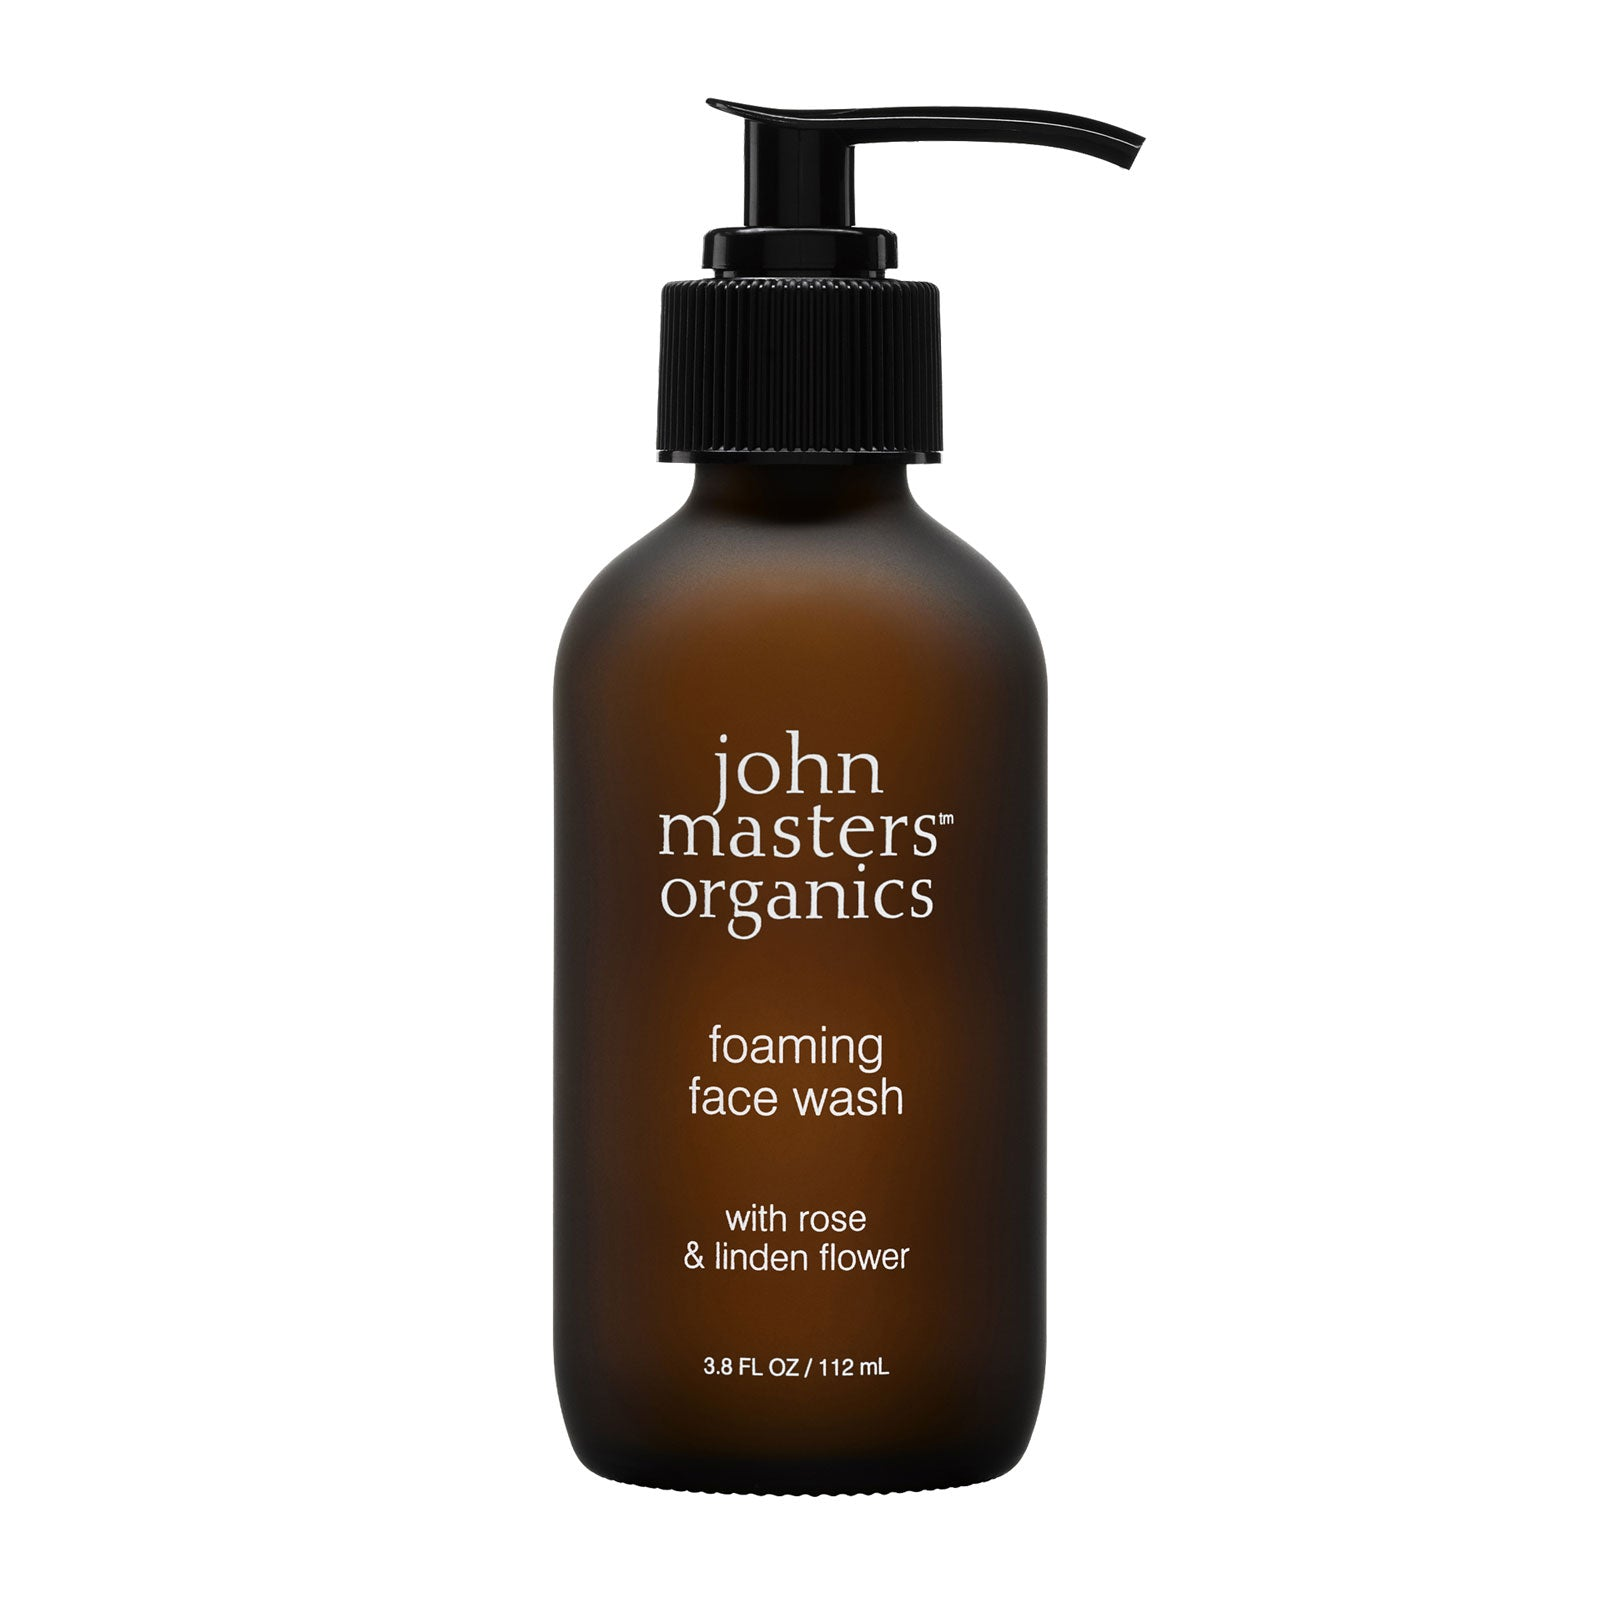 John Masters Organics Foaming Face Wash with Rose & Linden Flower 112ml